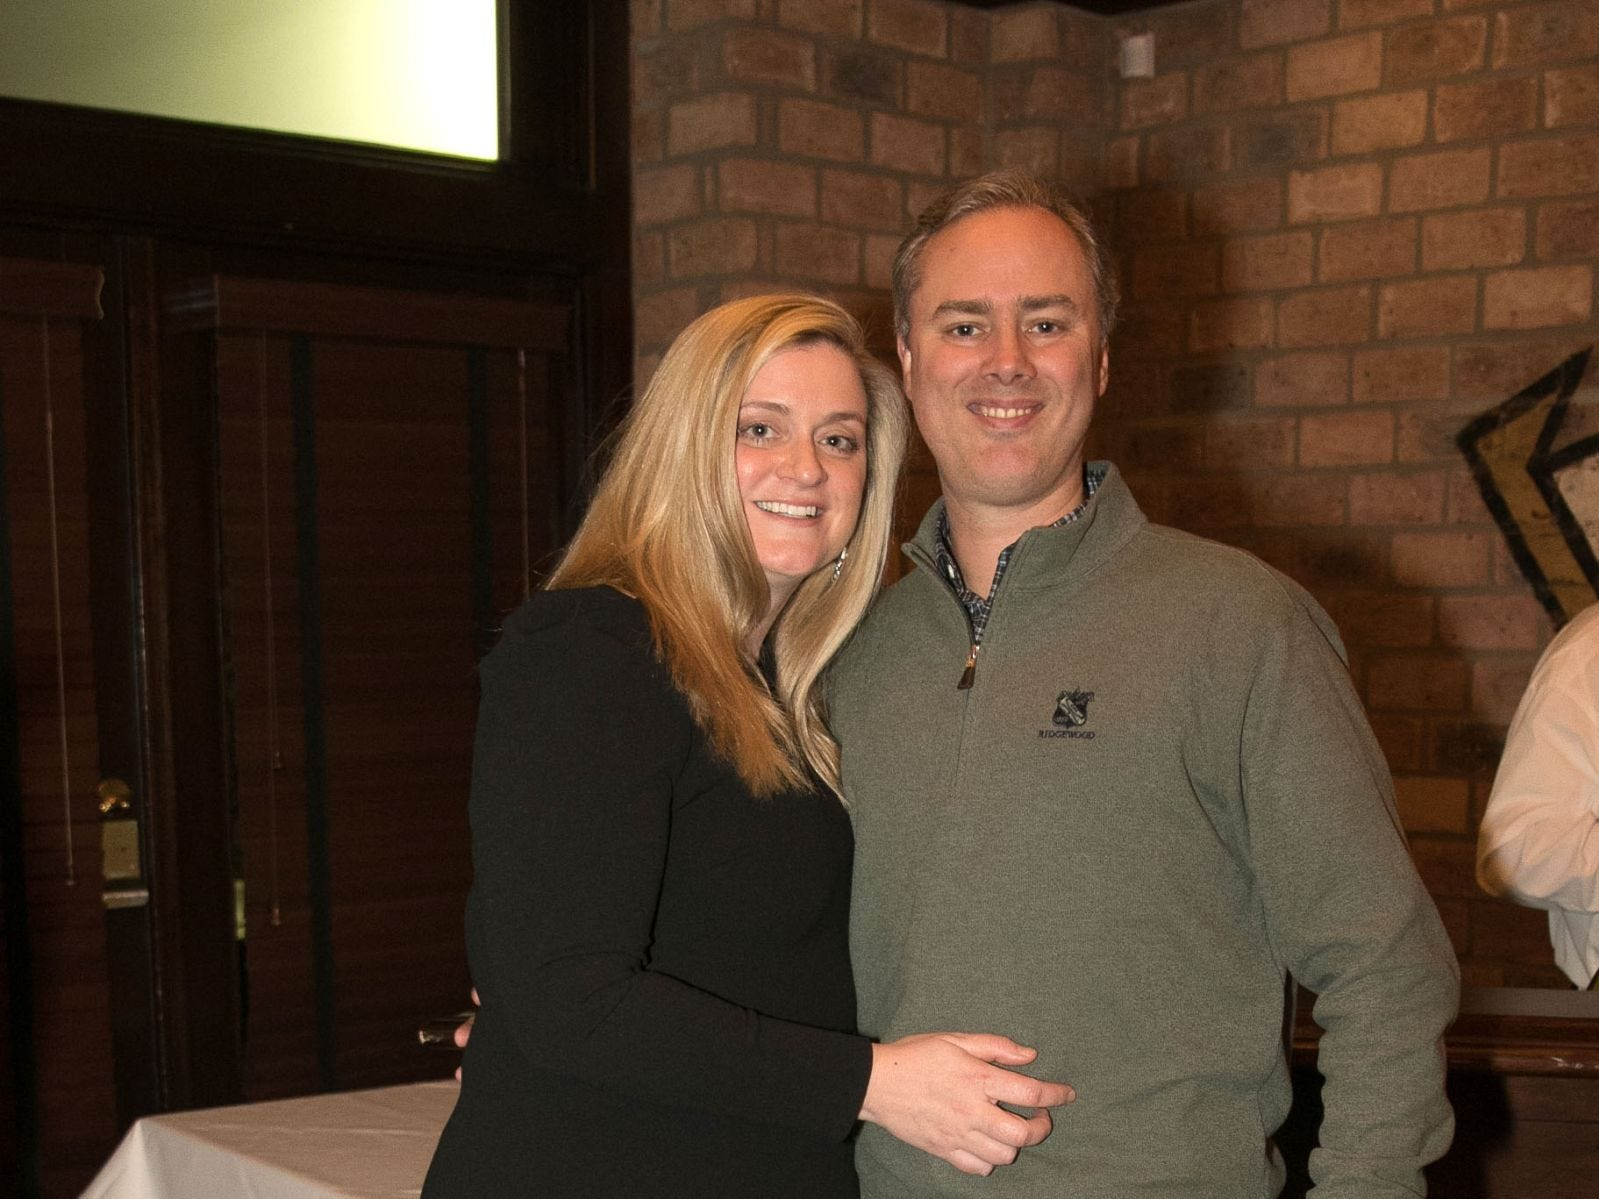 Christina and Brian Gibbons. Christina Gibbons of Special Properties held a cocktail reception to acknowledge her clients at Roots Steakhouse in Ridgewood. 02/07/2019